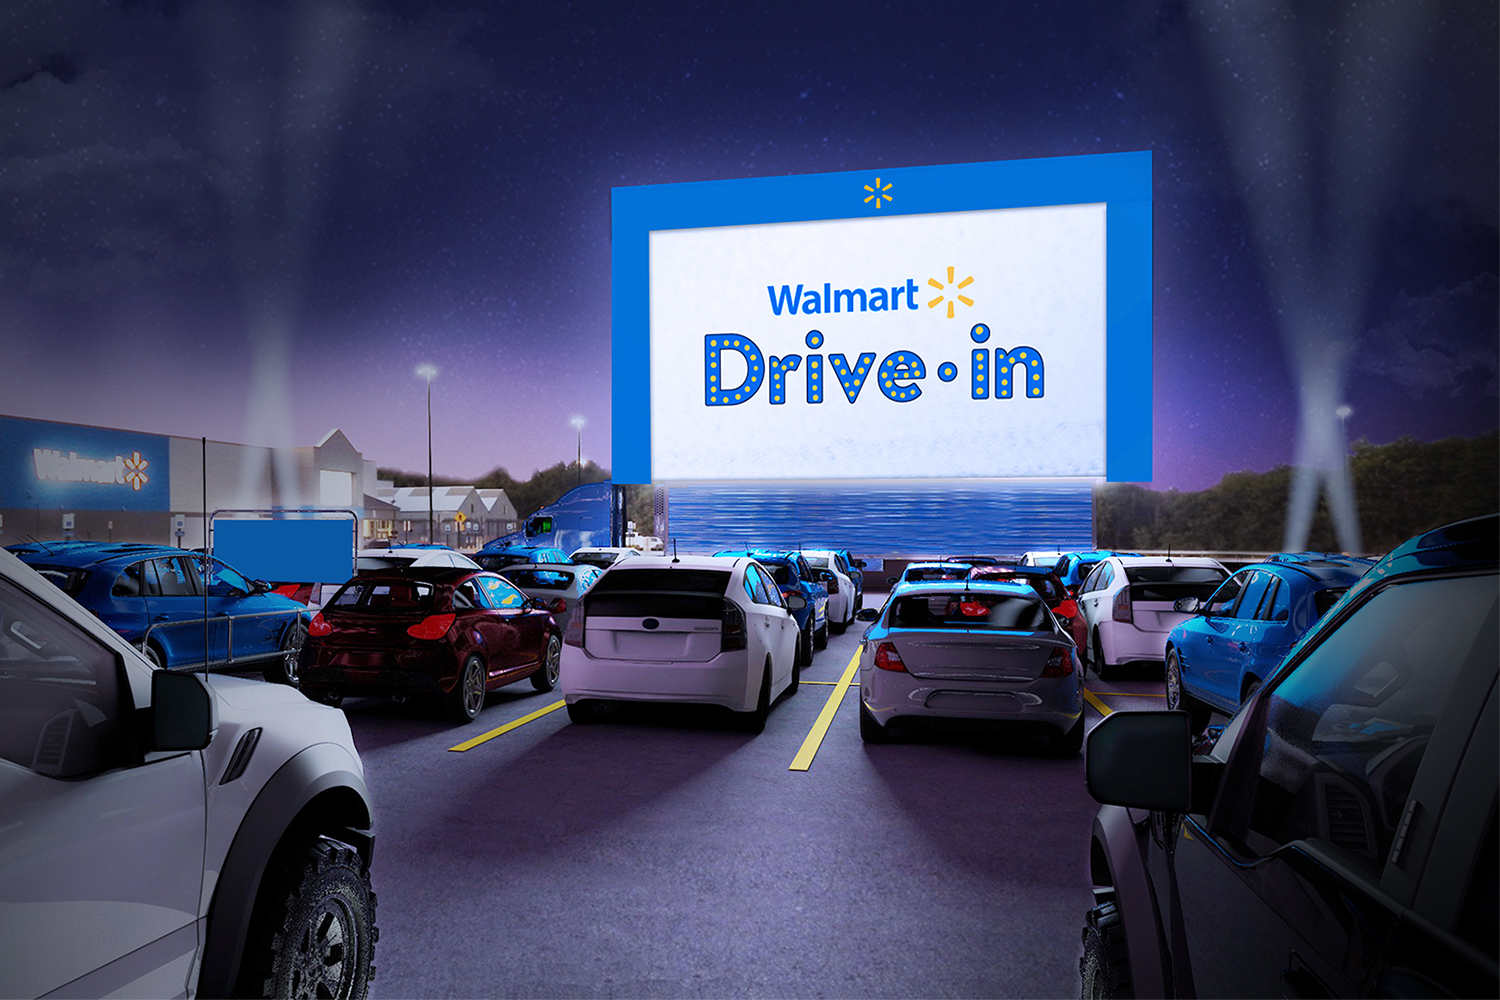 Walmart drive-in movie theater in the store parking lot